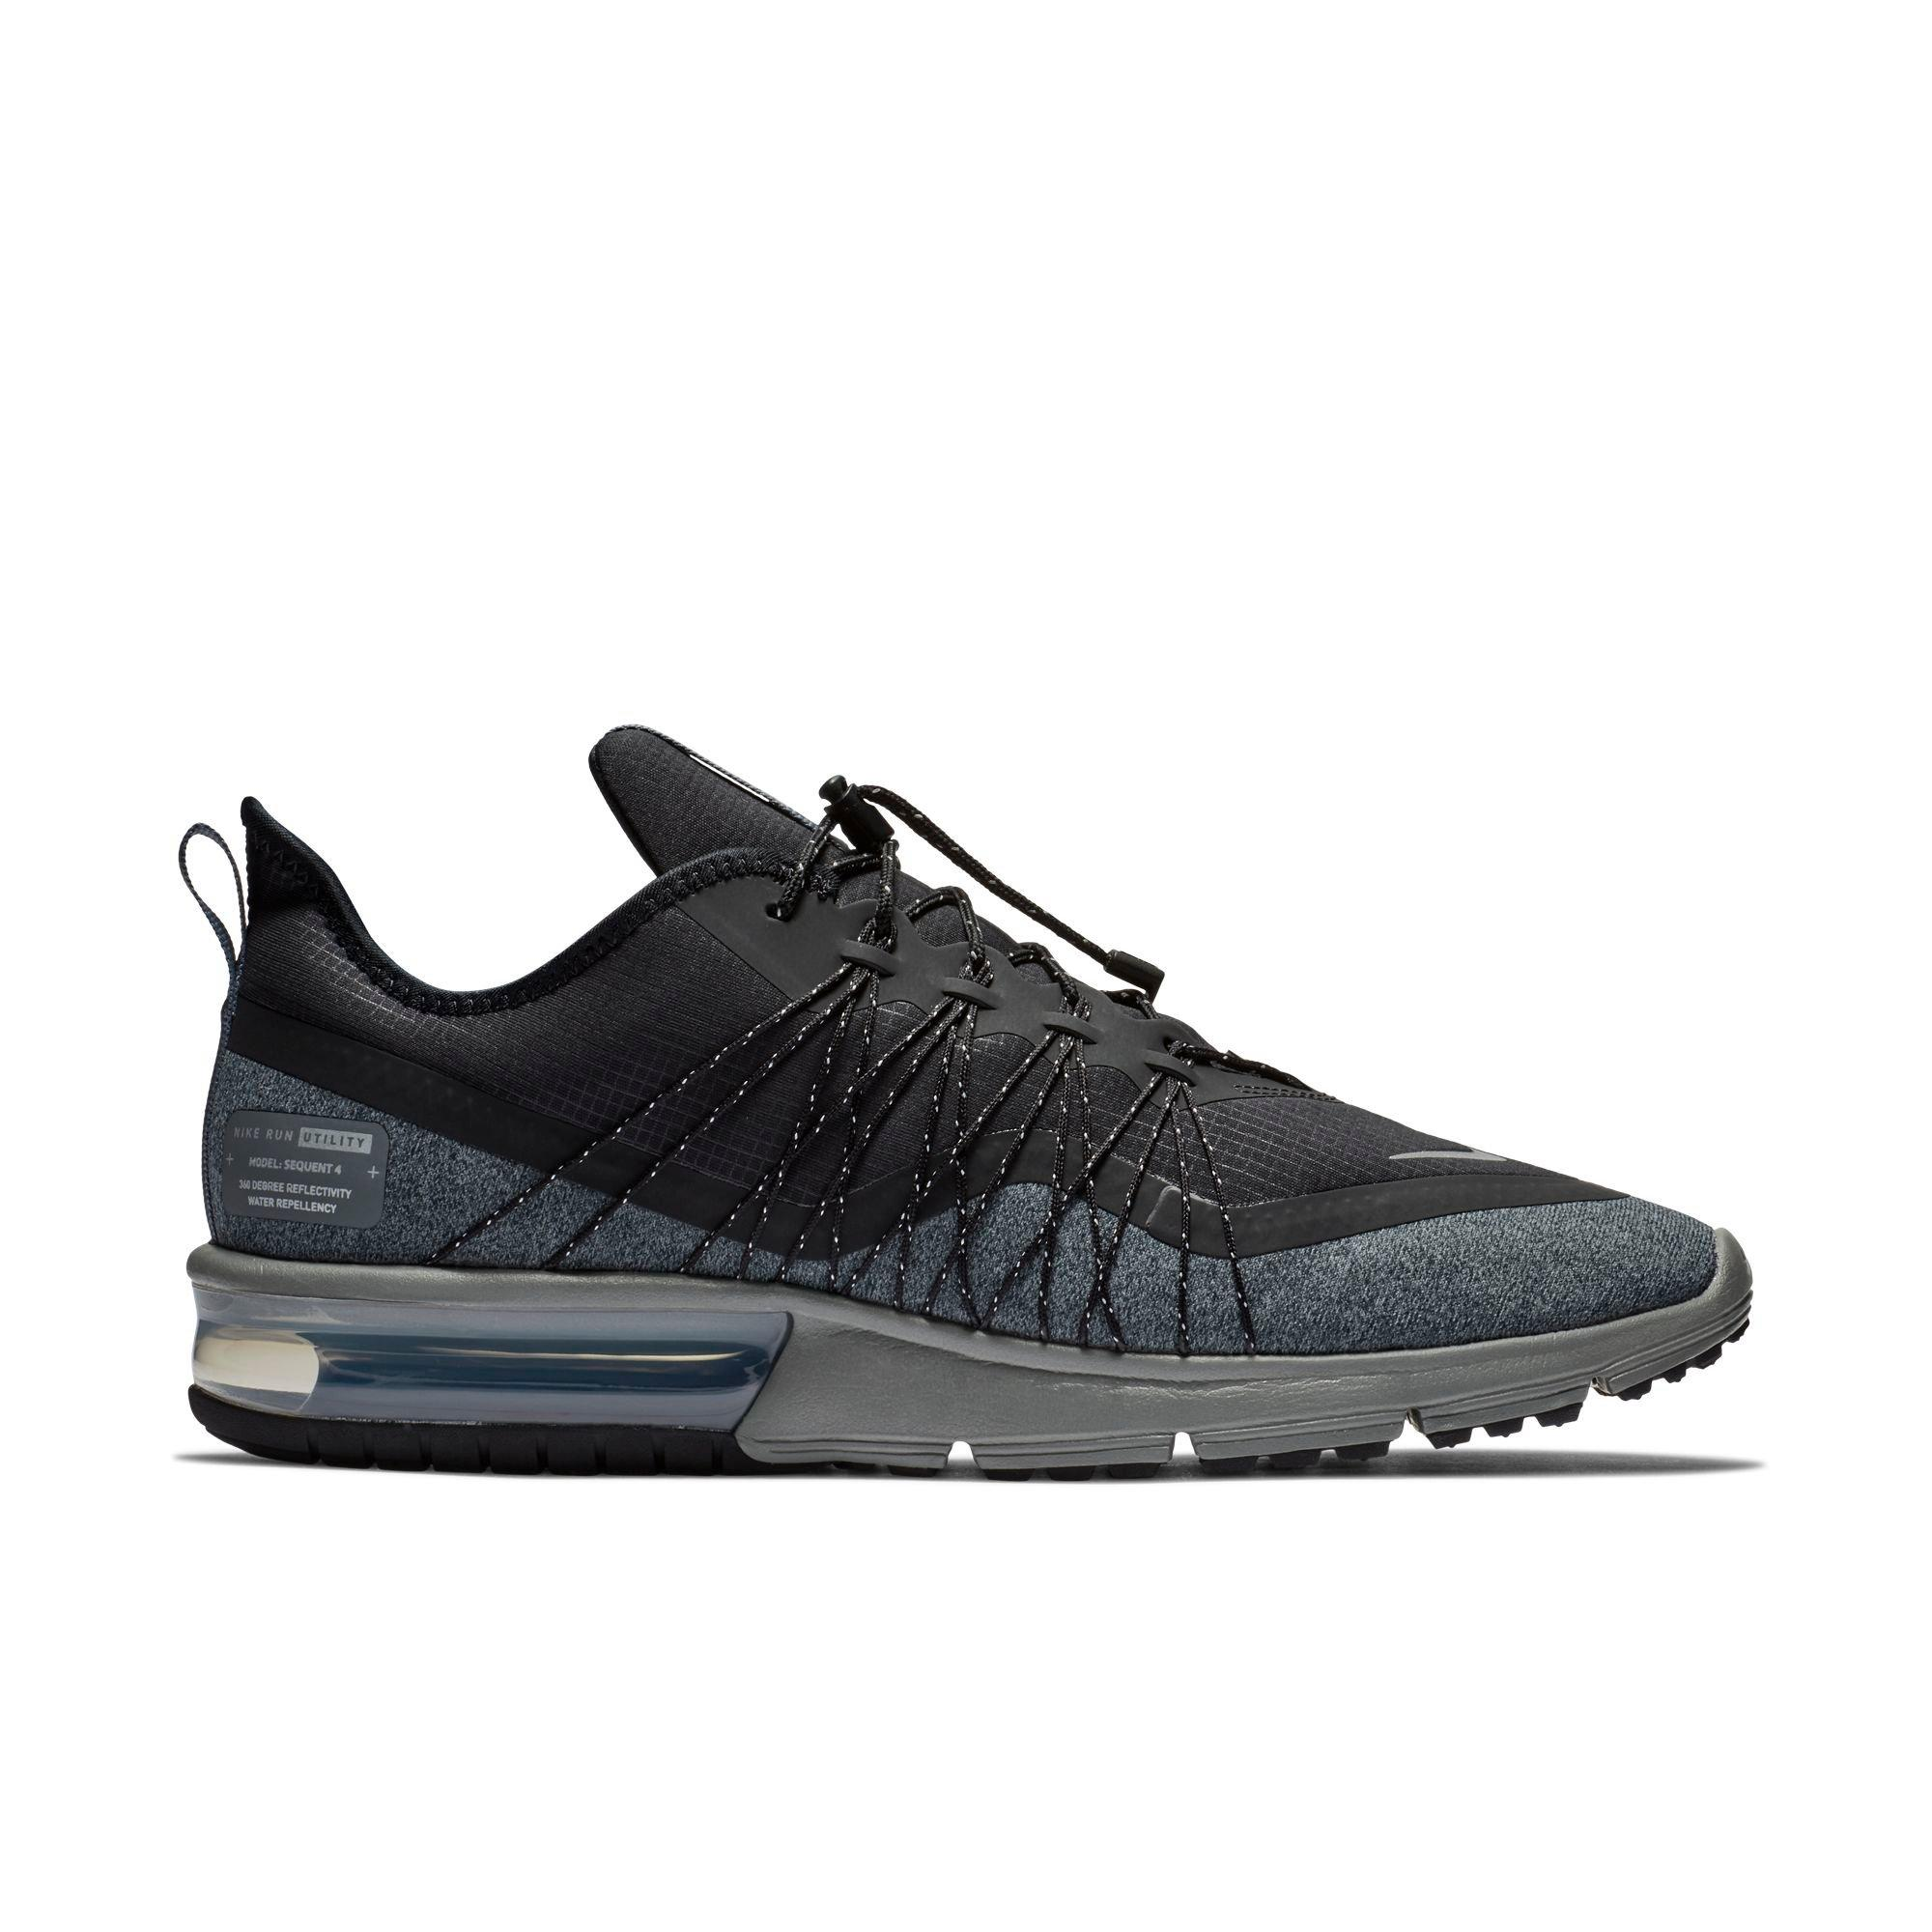 Federal cocinero sol  Nike Air Max Sequent 4 Shield